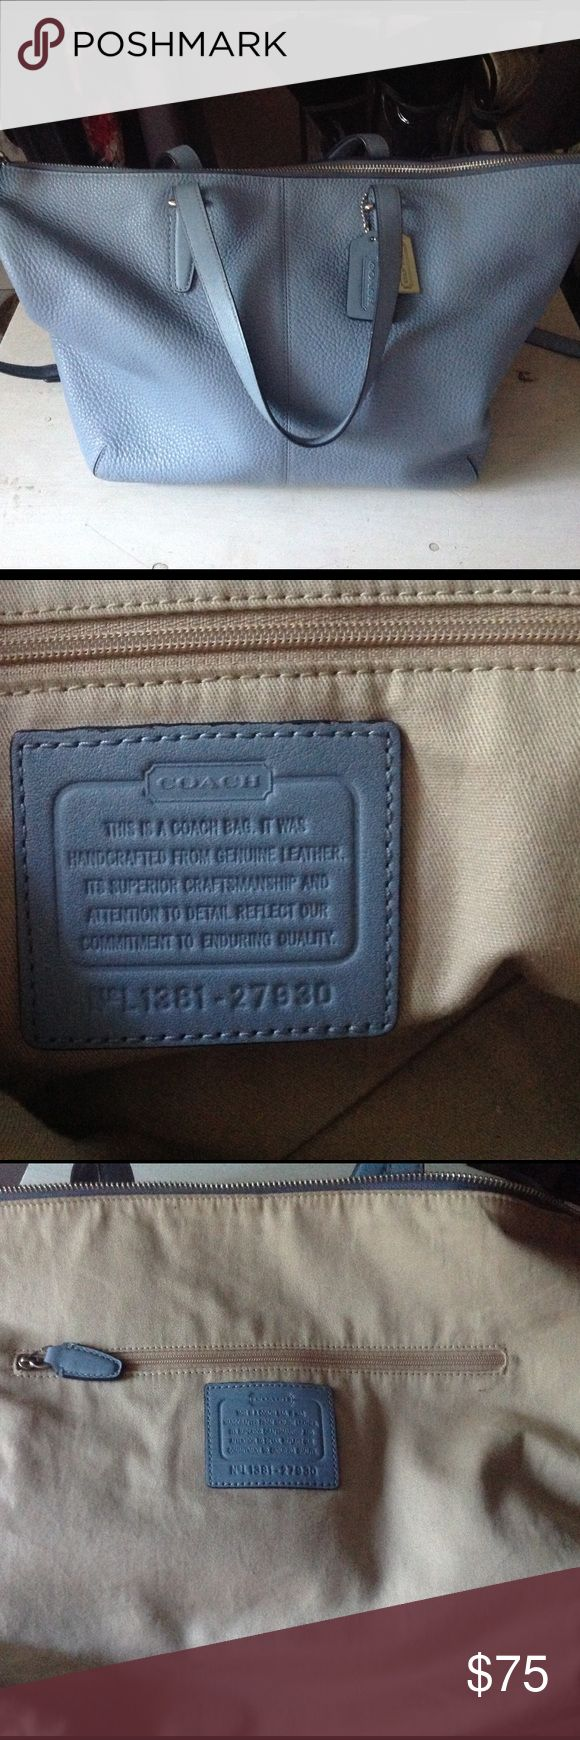 💯AUTHENTIC Coach Bleecker Satchel! I bought two on Poshmark and I like the smaller one better. This is a medium sized satchel in pebble leather. Has a hand carry strap and an adjustable cross body strap. Beautiful Light blue. Excellent condition. No flaws of any kind. See pics for authenticity. Only reasonable offers will be considered. Coach Bags Crossbody Bags